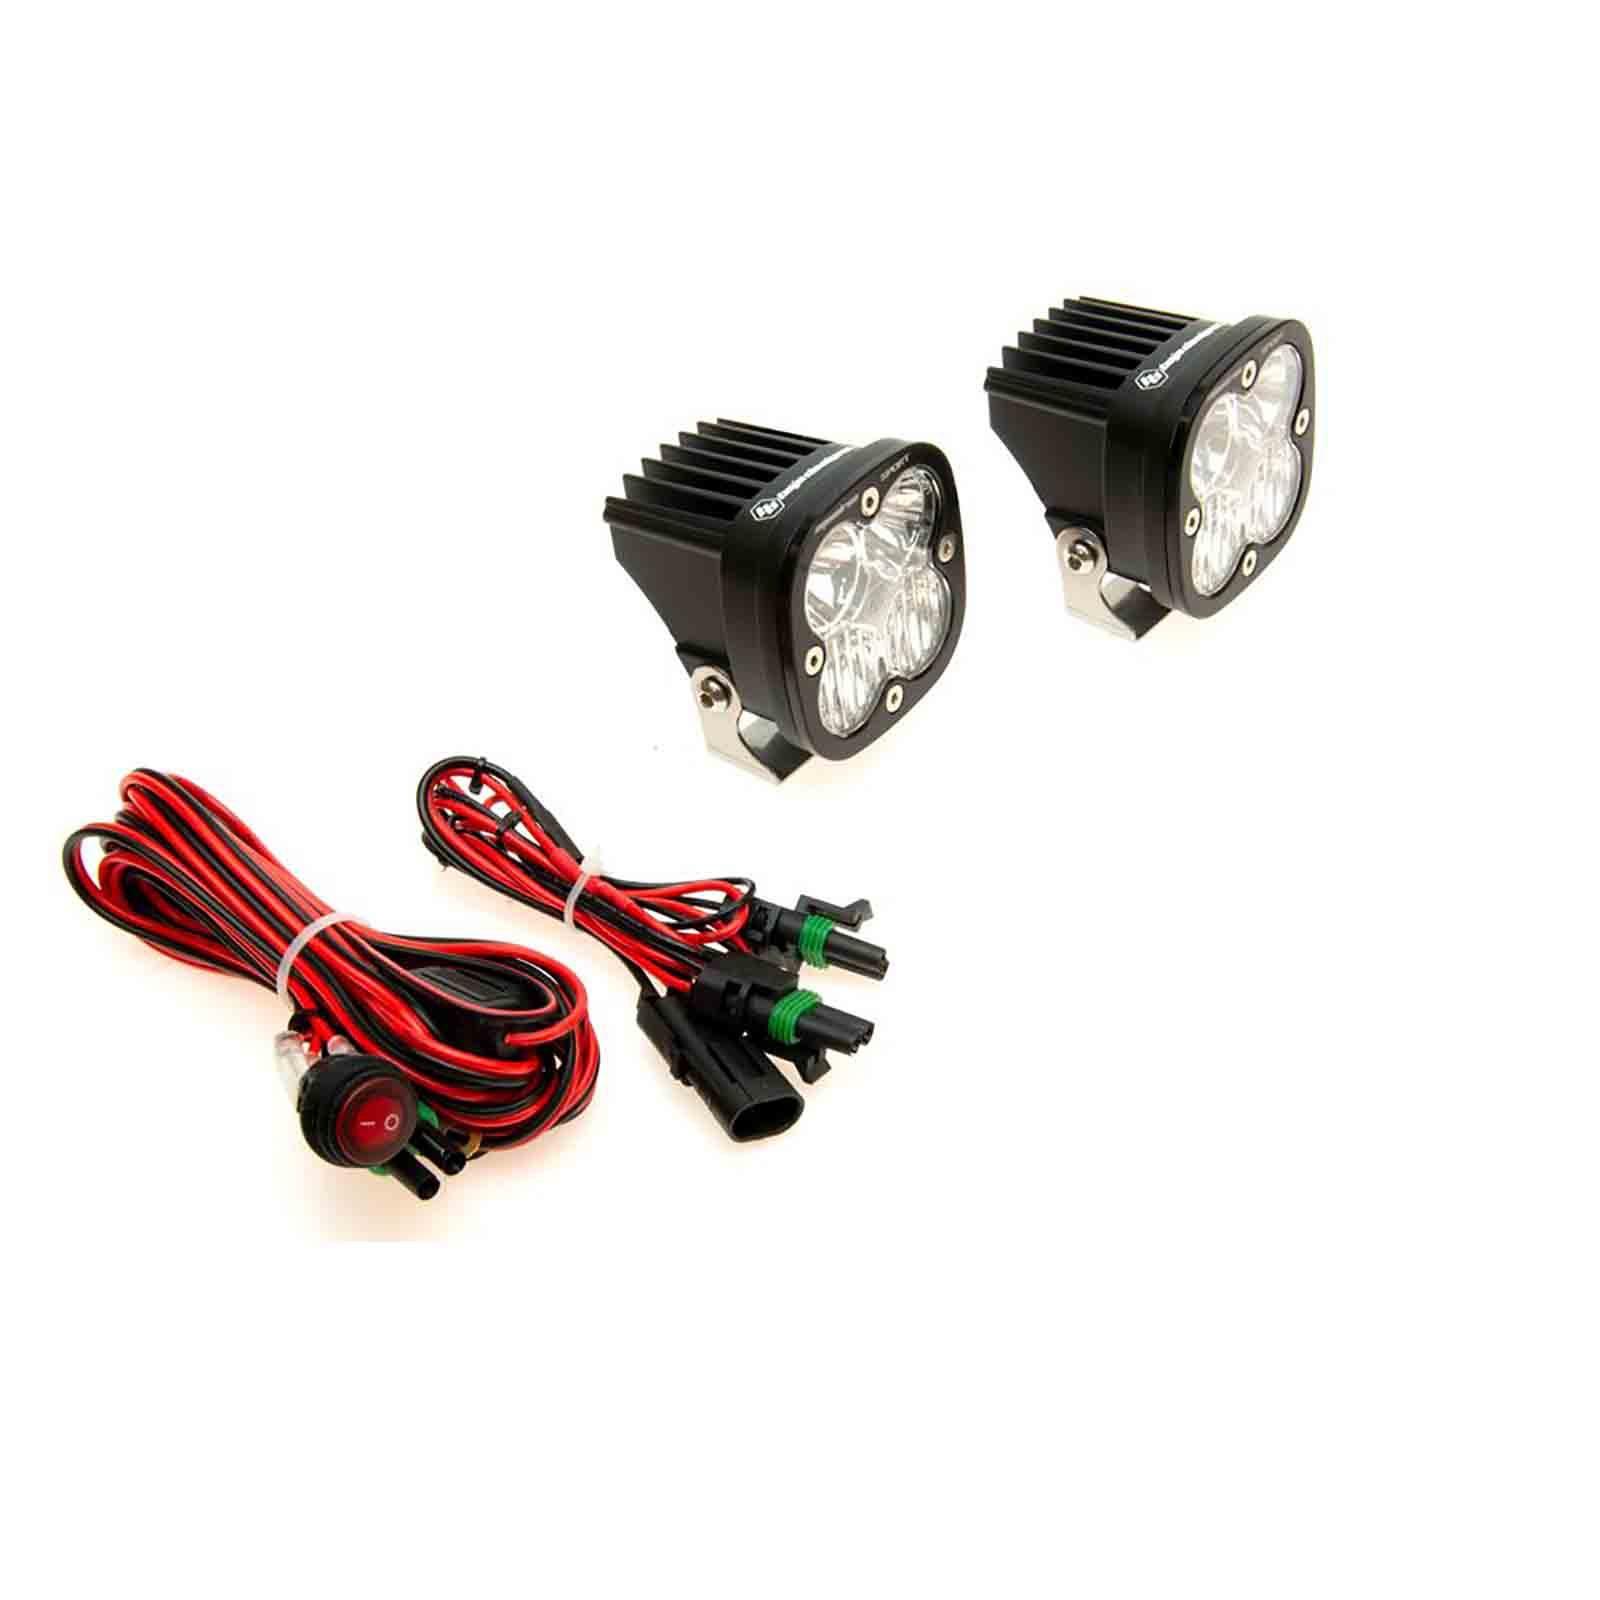 Baja designs fai luci a led squadron sport led  pair with wiring harness ricambi jeep